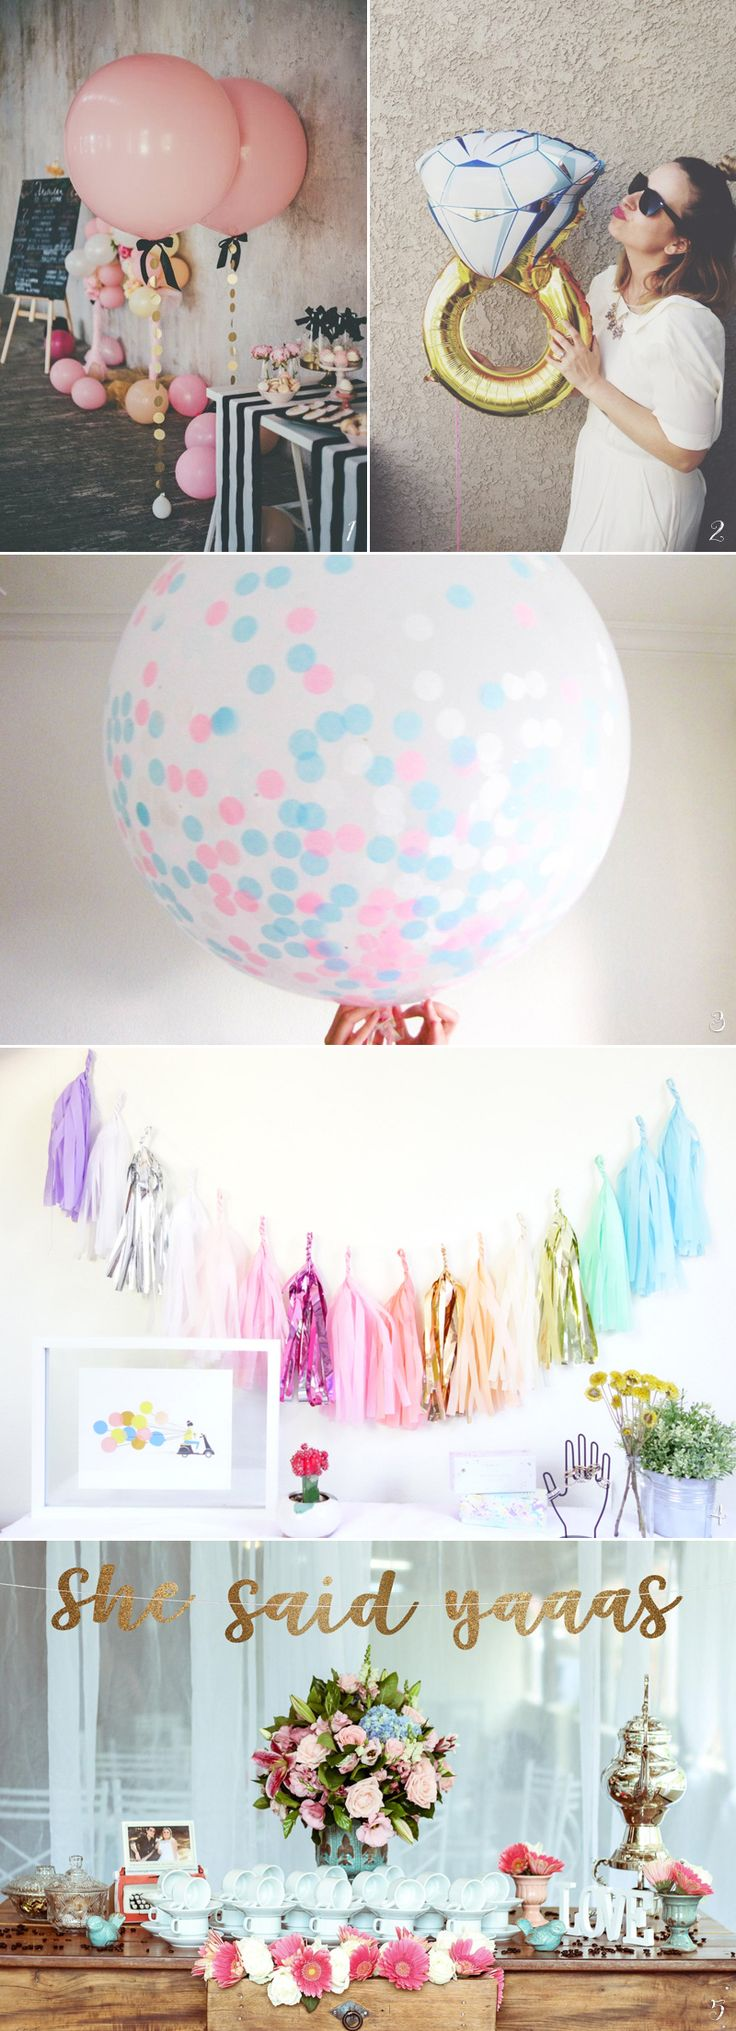 Gift For Kitchen Tea 17 Best Ideas About Bridal Shower Gifts On Pinterest Bridal